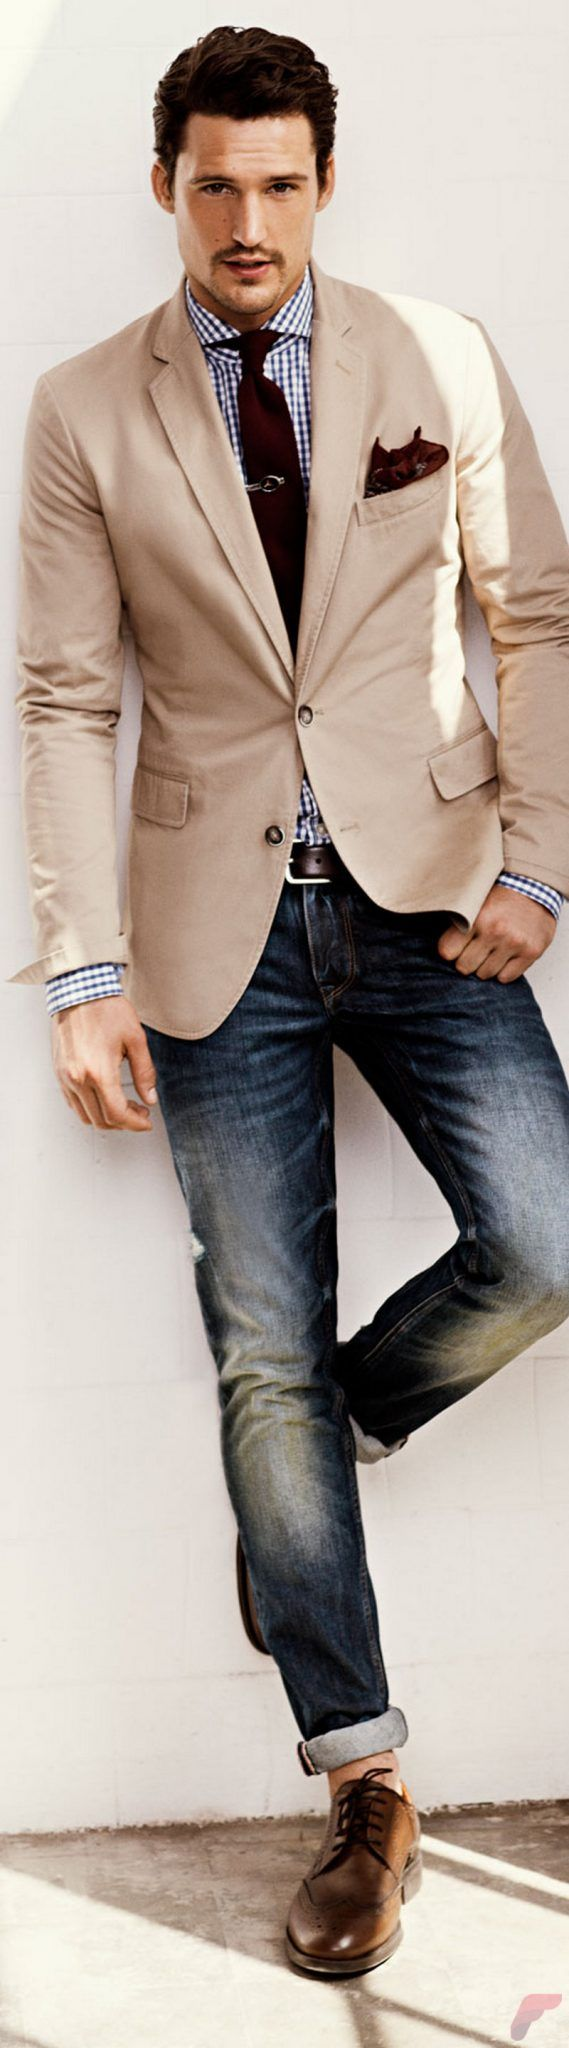 Best 25+ Jeans for men ideas on Pinterest